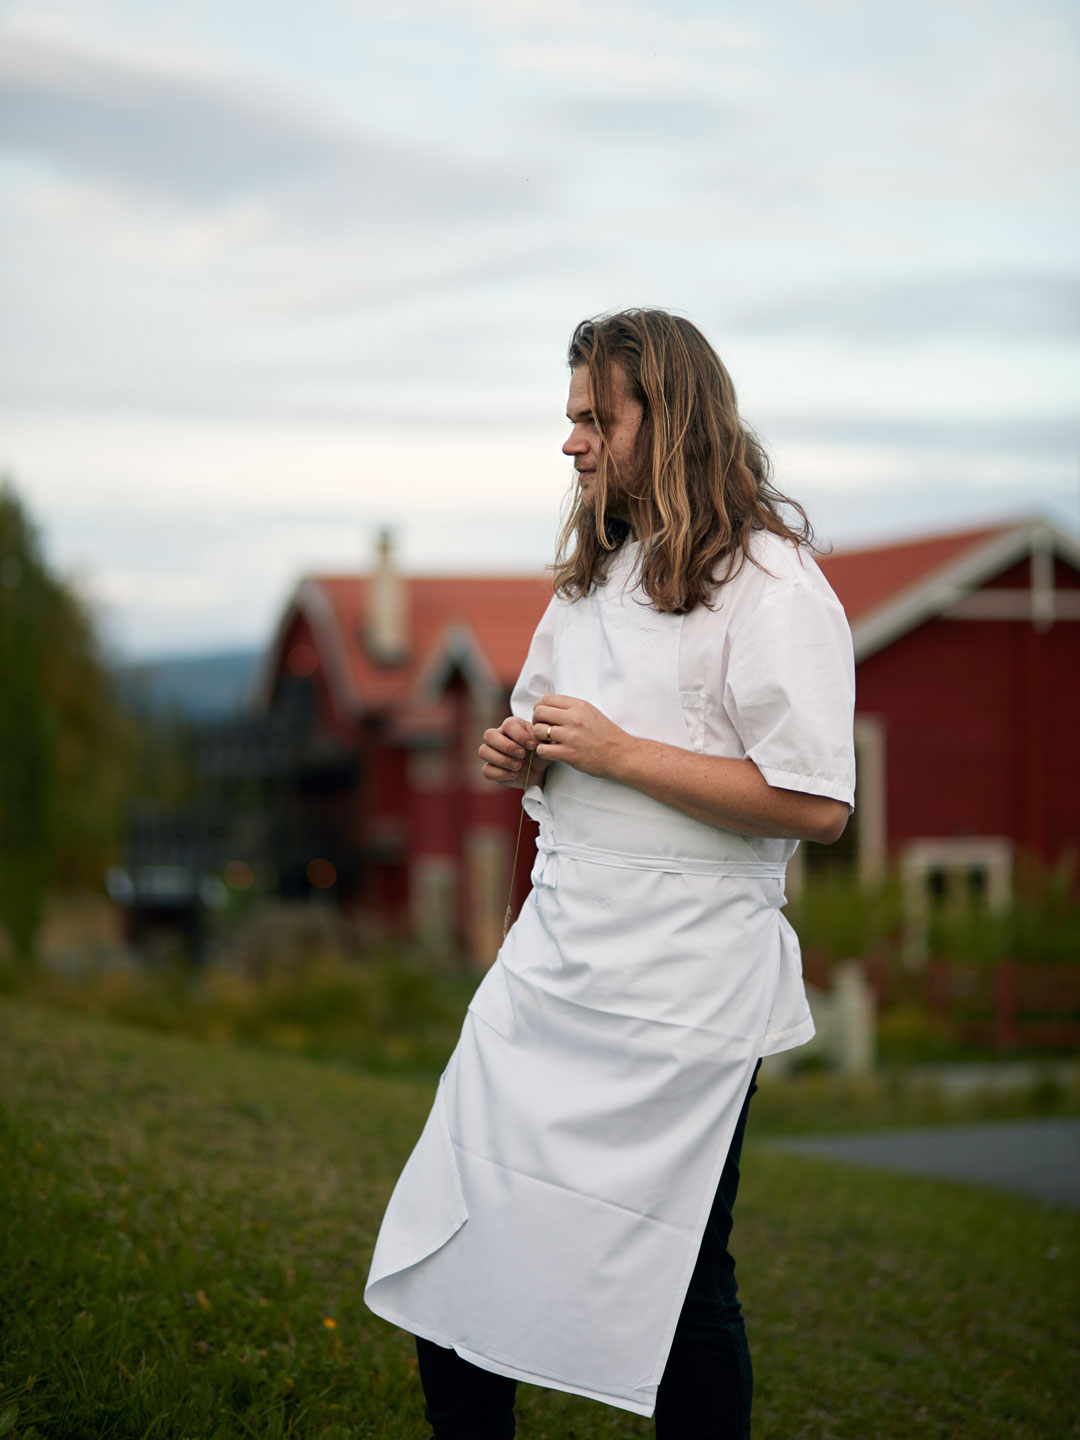 Chef and author Magnus Nilsson. Photo by Erik Olsson